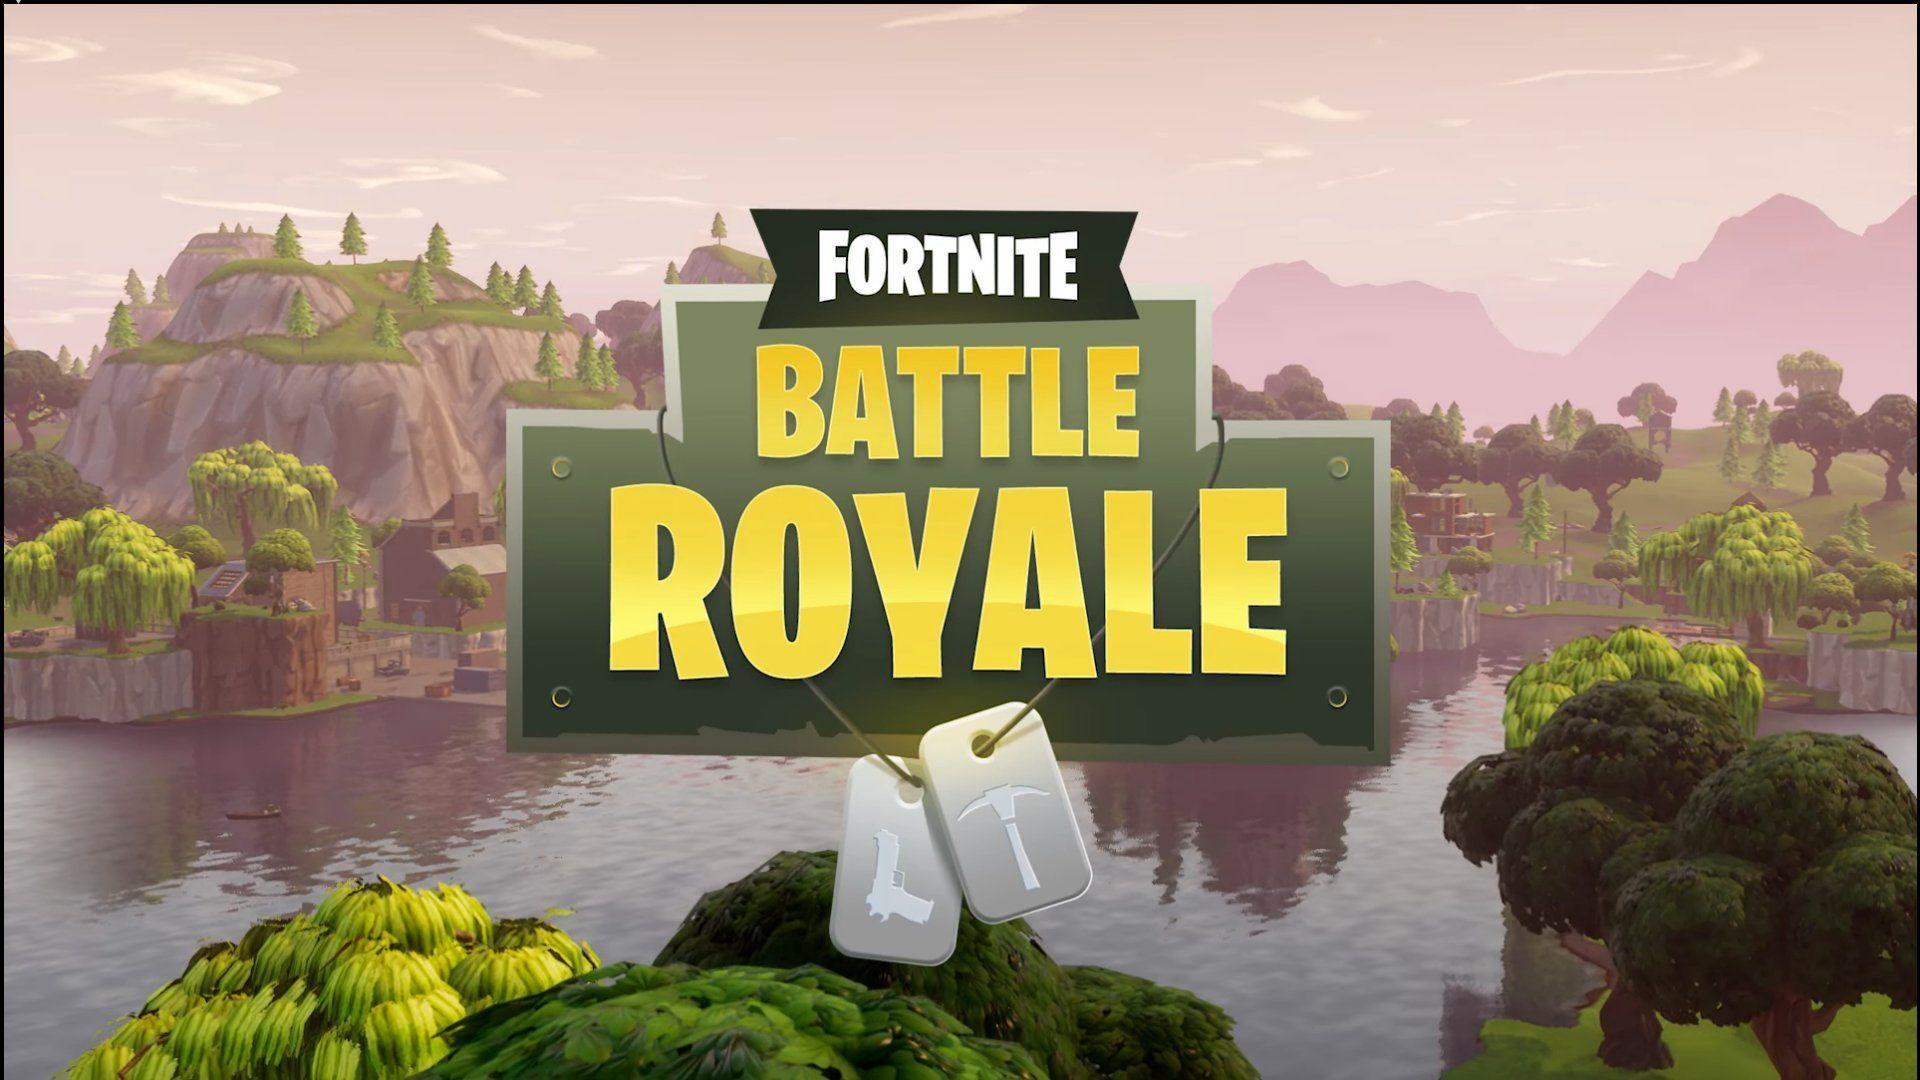 wp2366068 Best Fortnite Wallpapers:4K,HD,1920x1080[Download]